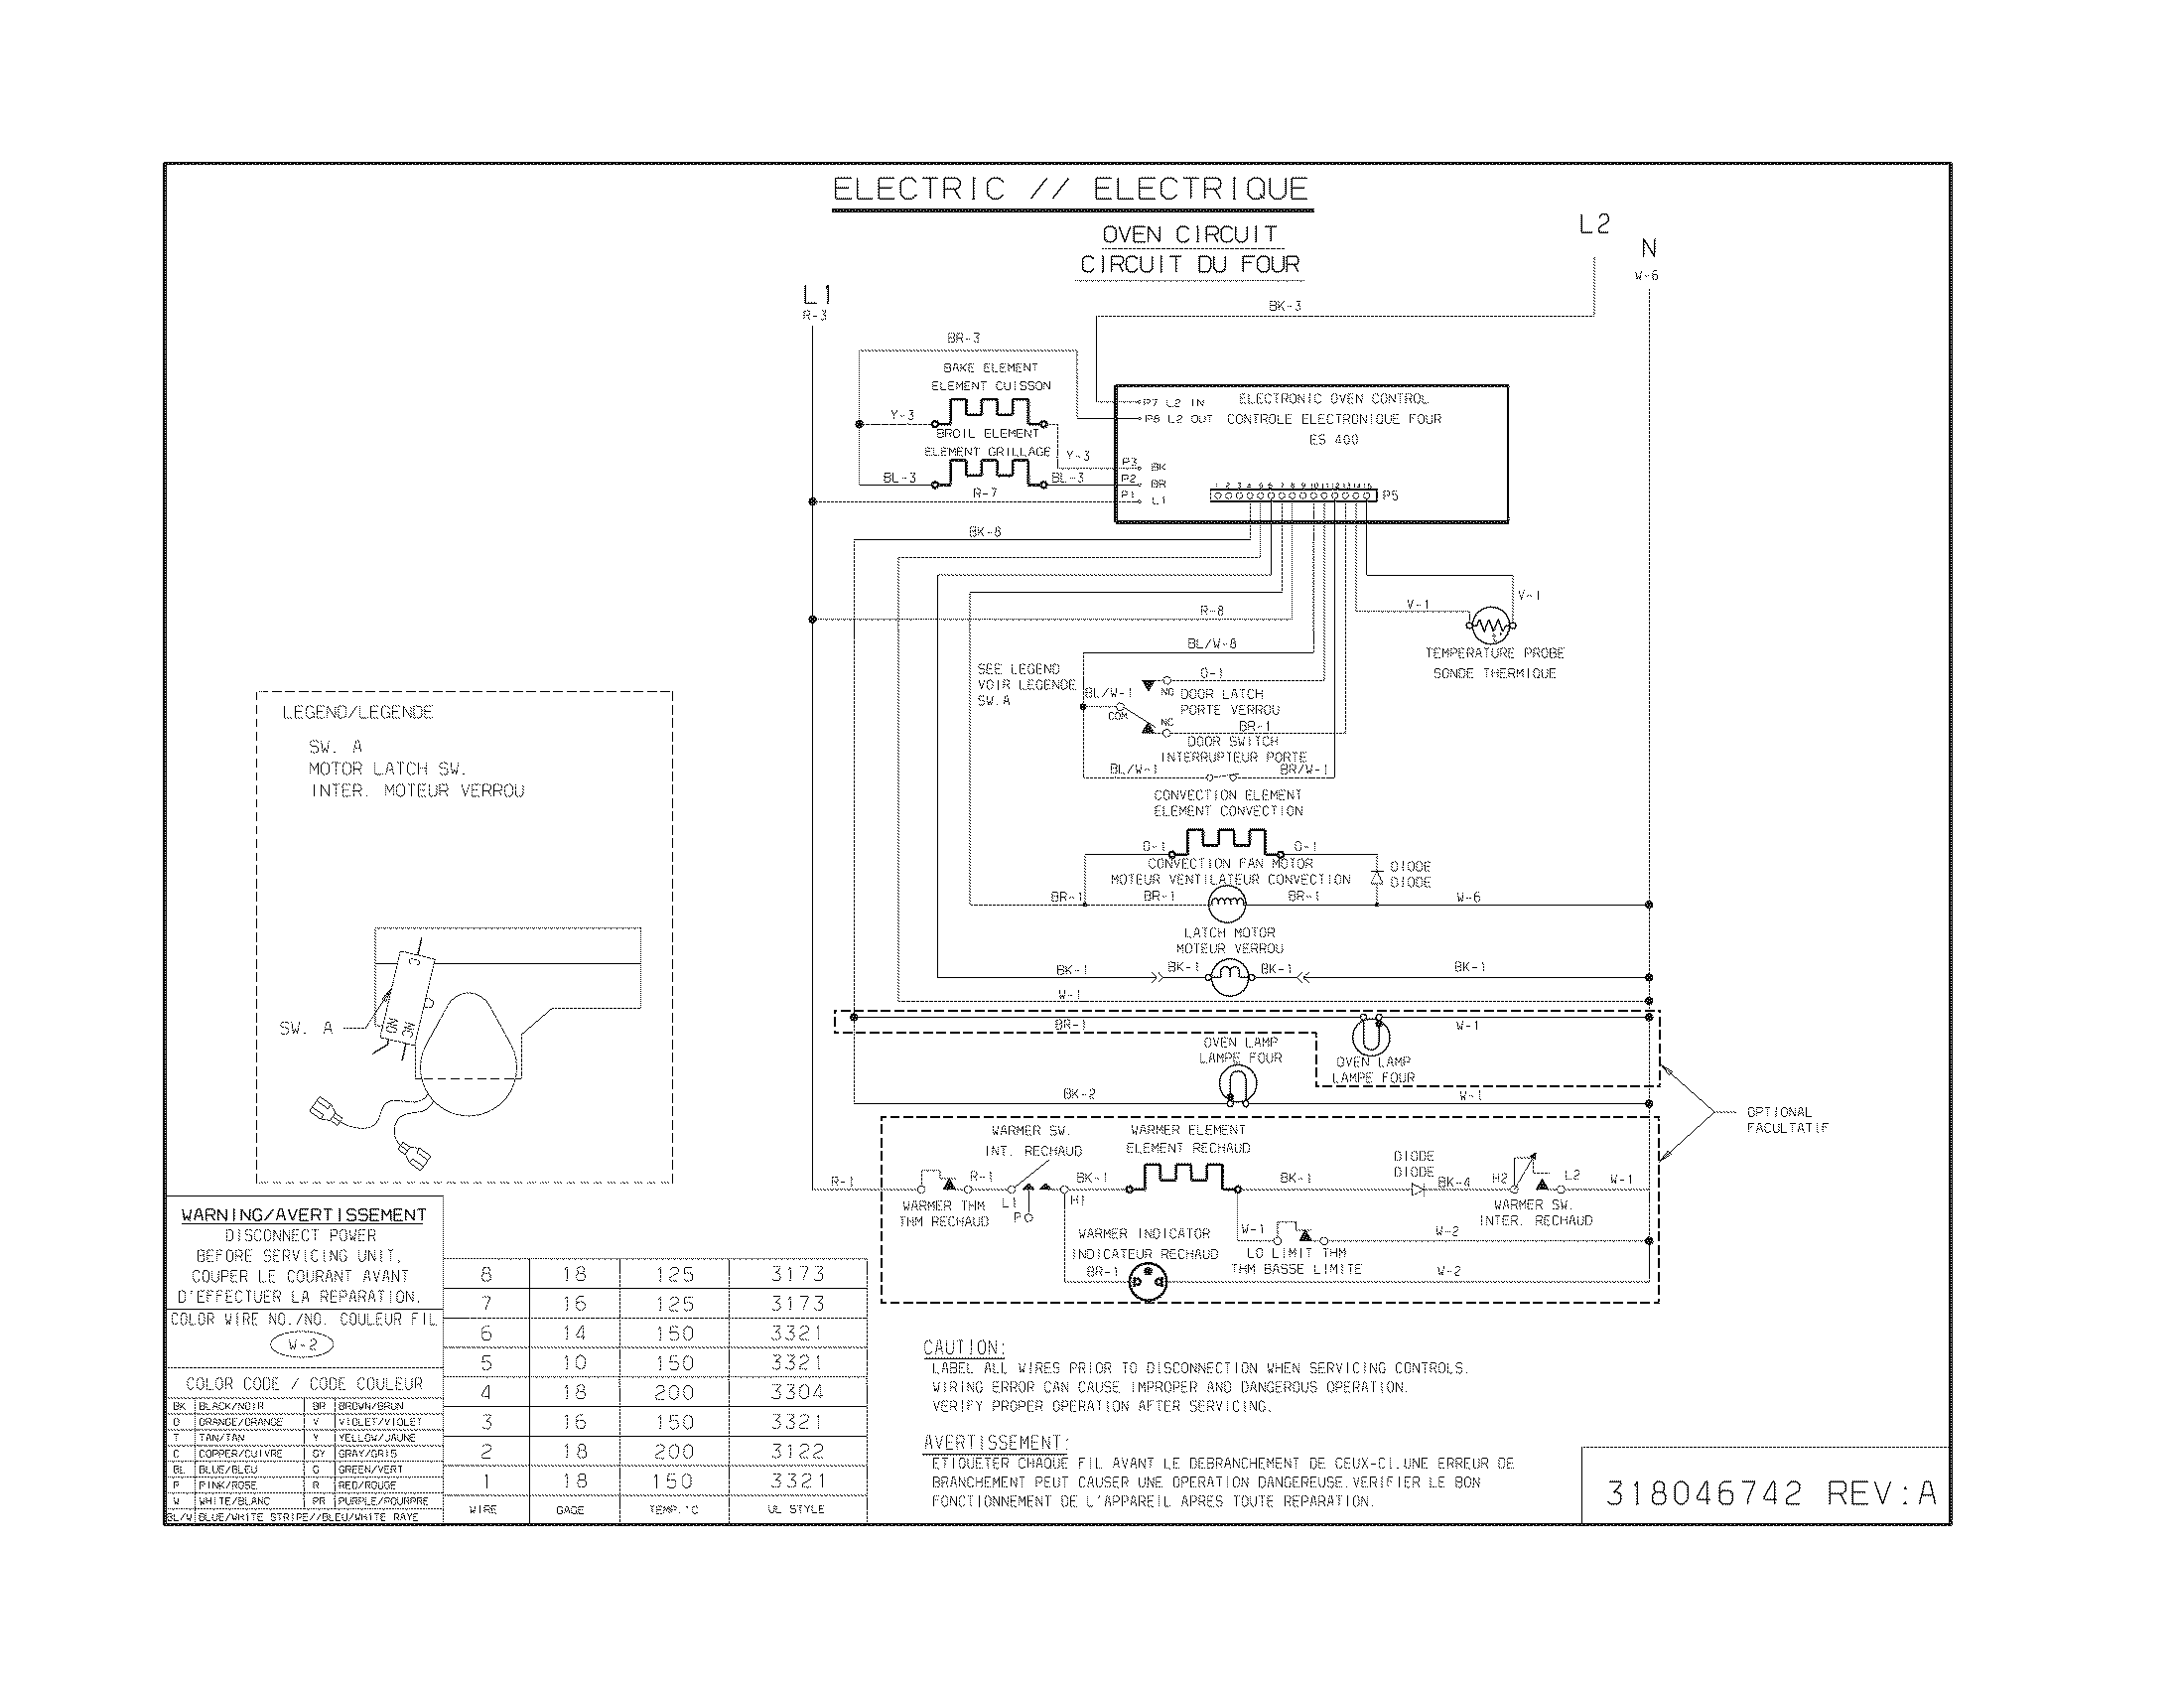 wiring diagram parts frigidaire pglef385cs2 electric range timer stove clocks and  at suagrazia.org